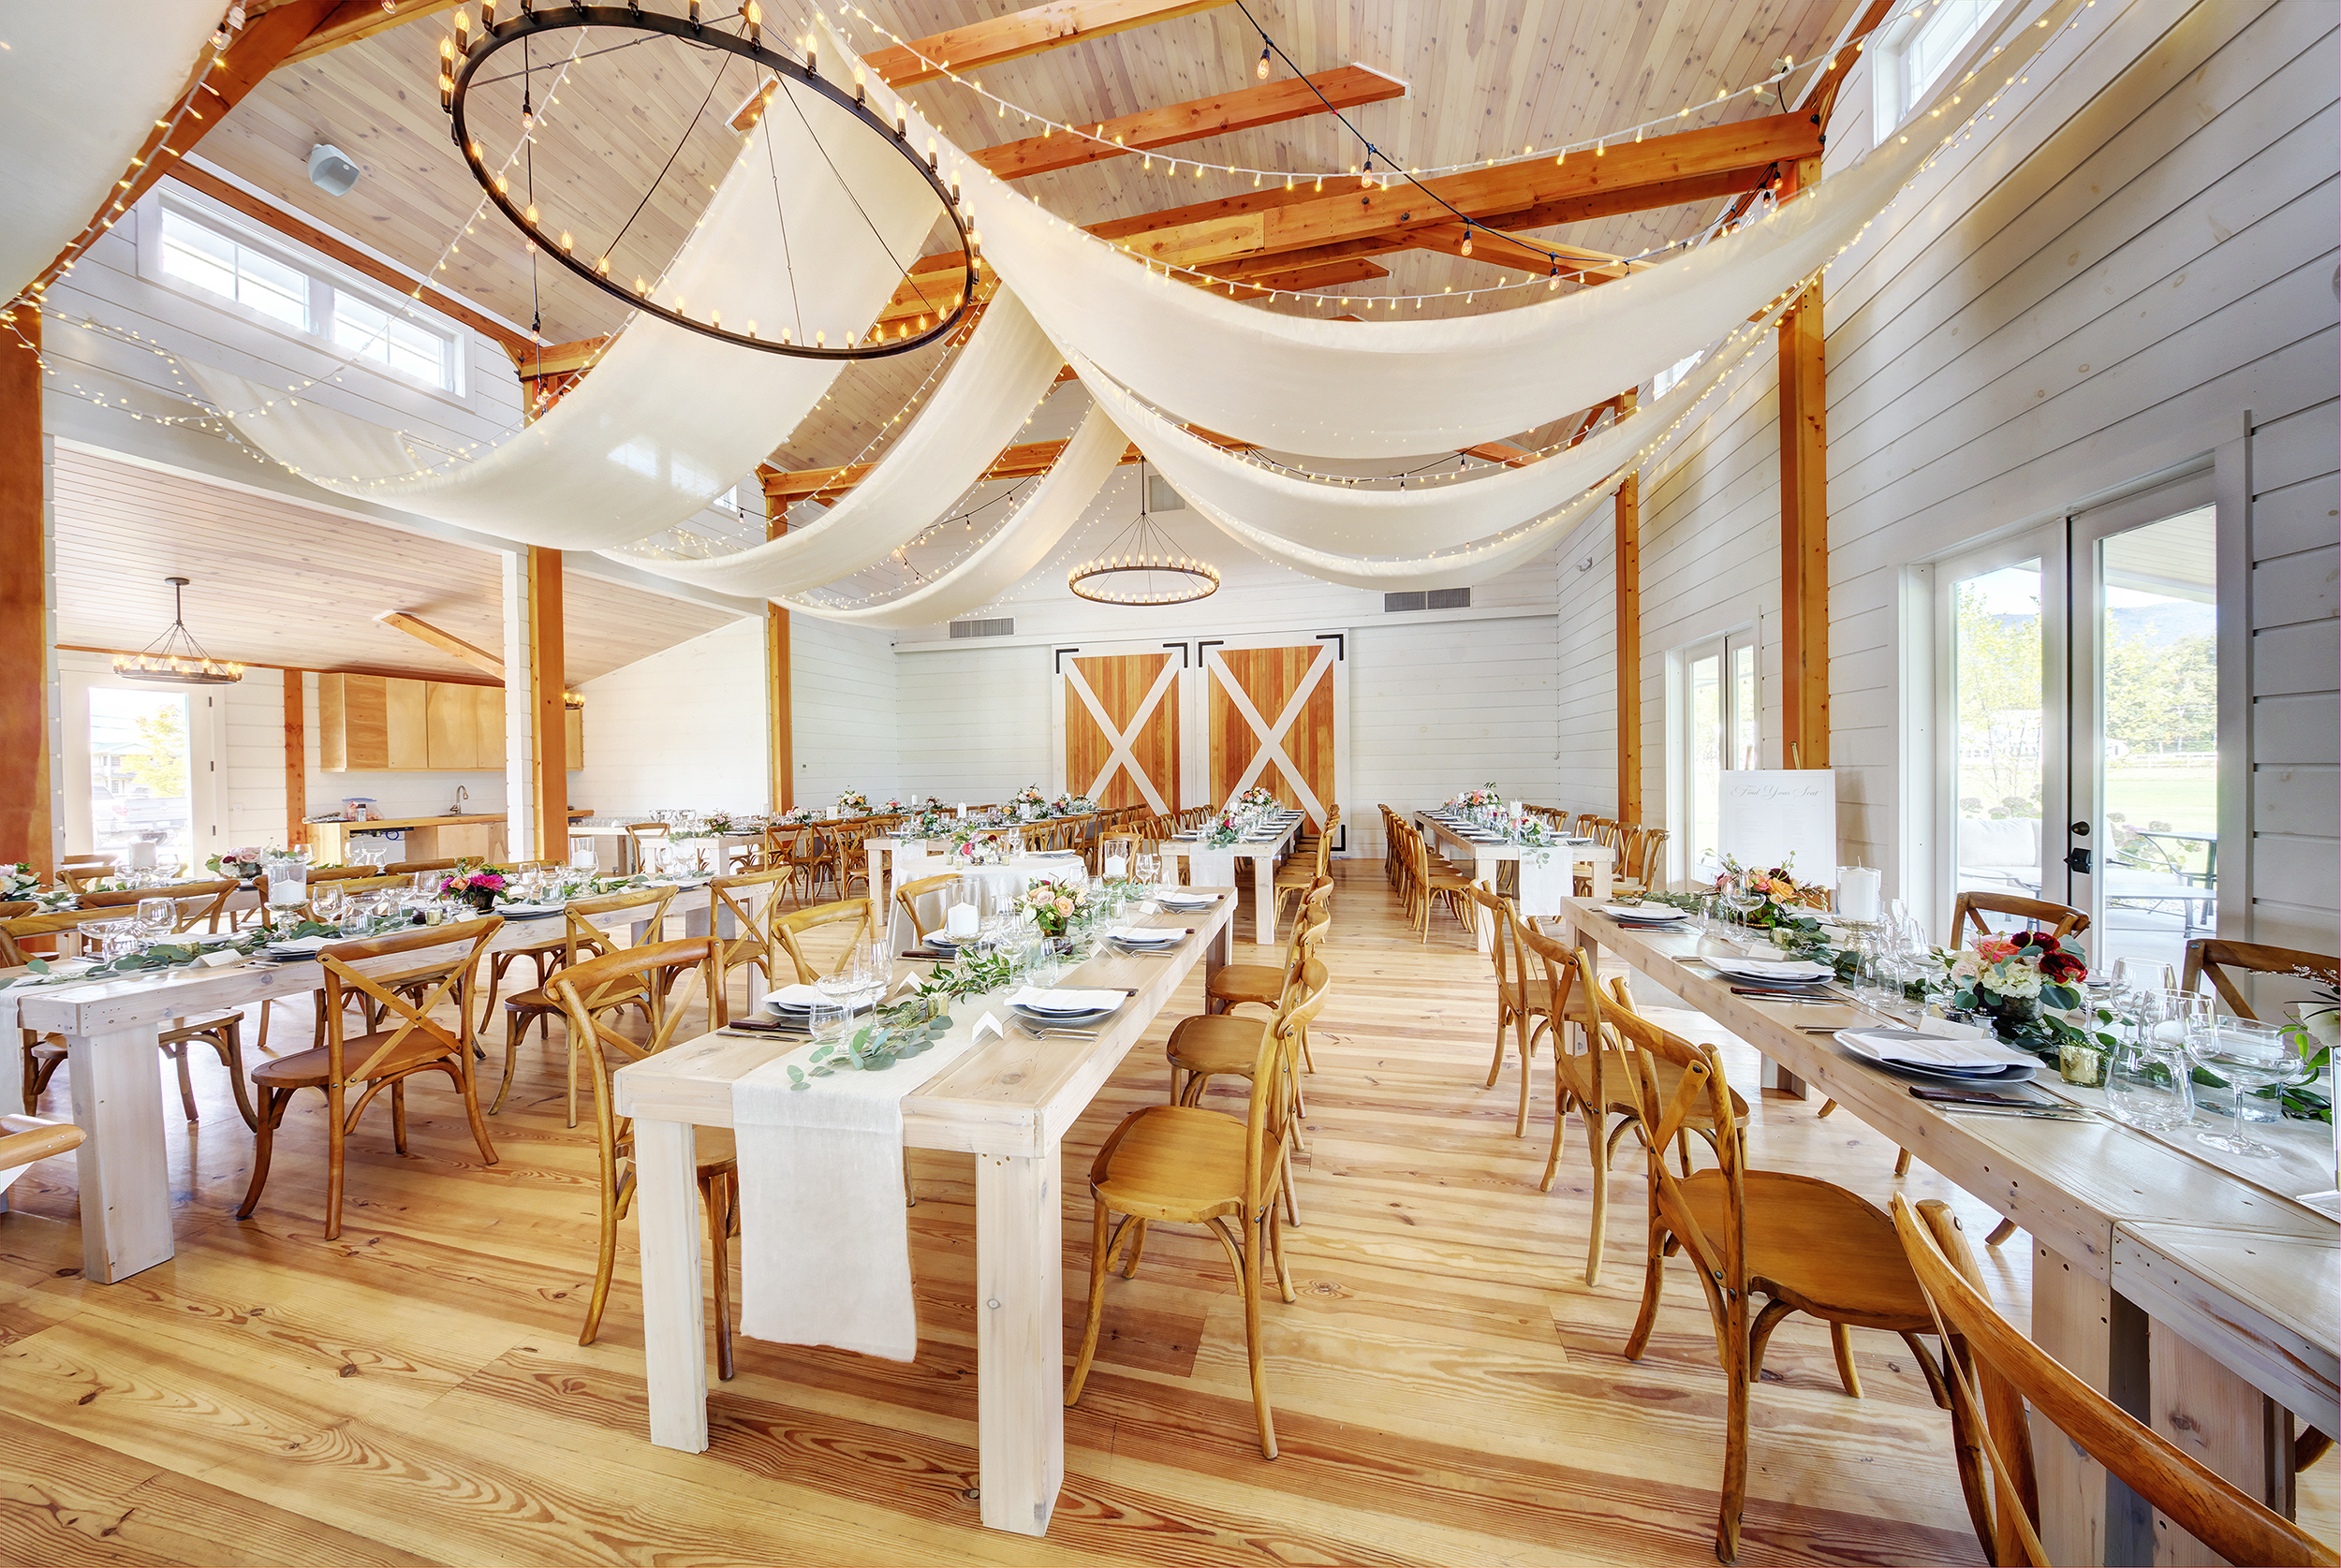 This is an elegant example of one of the many creative floor plans that are possible for your Stowe Wedding with our open floor plan at The Barn at Smugglers' Notch. Image: Steve DePalma